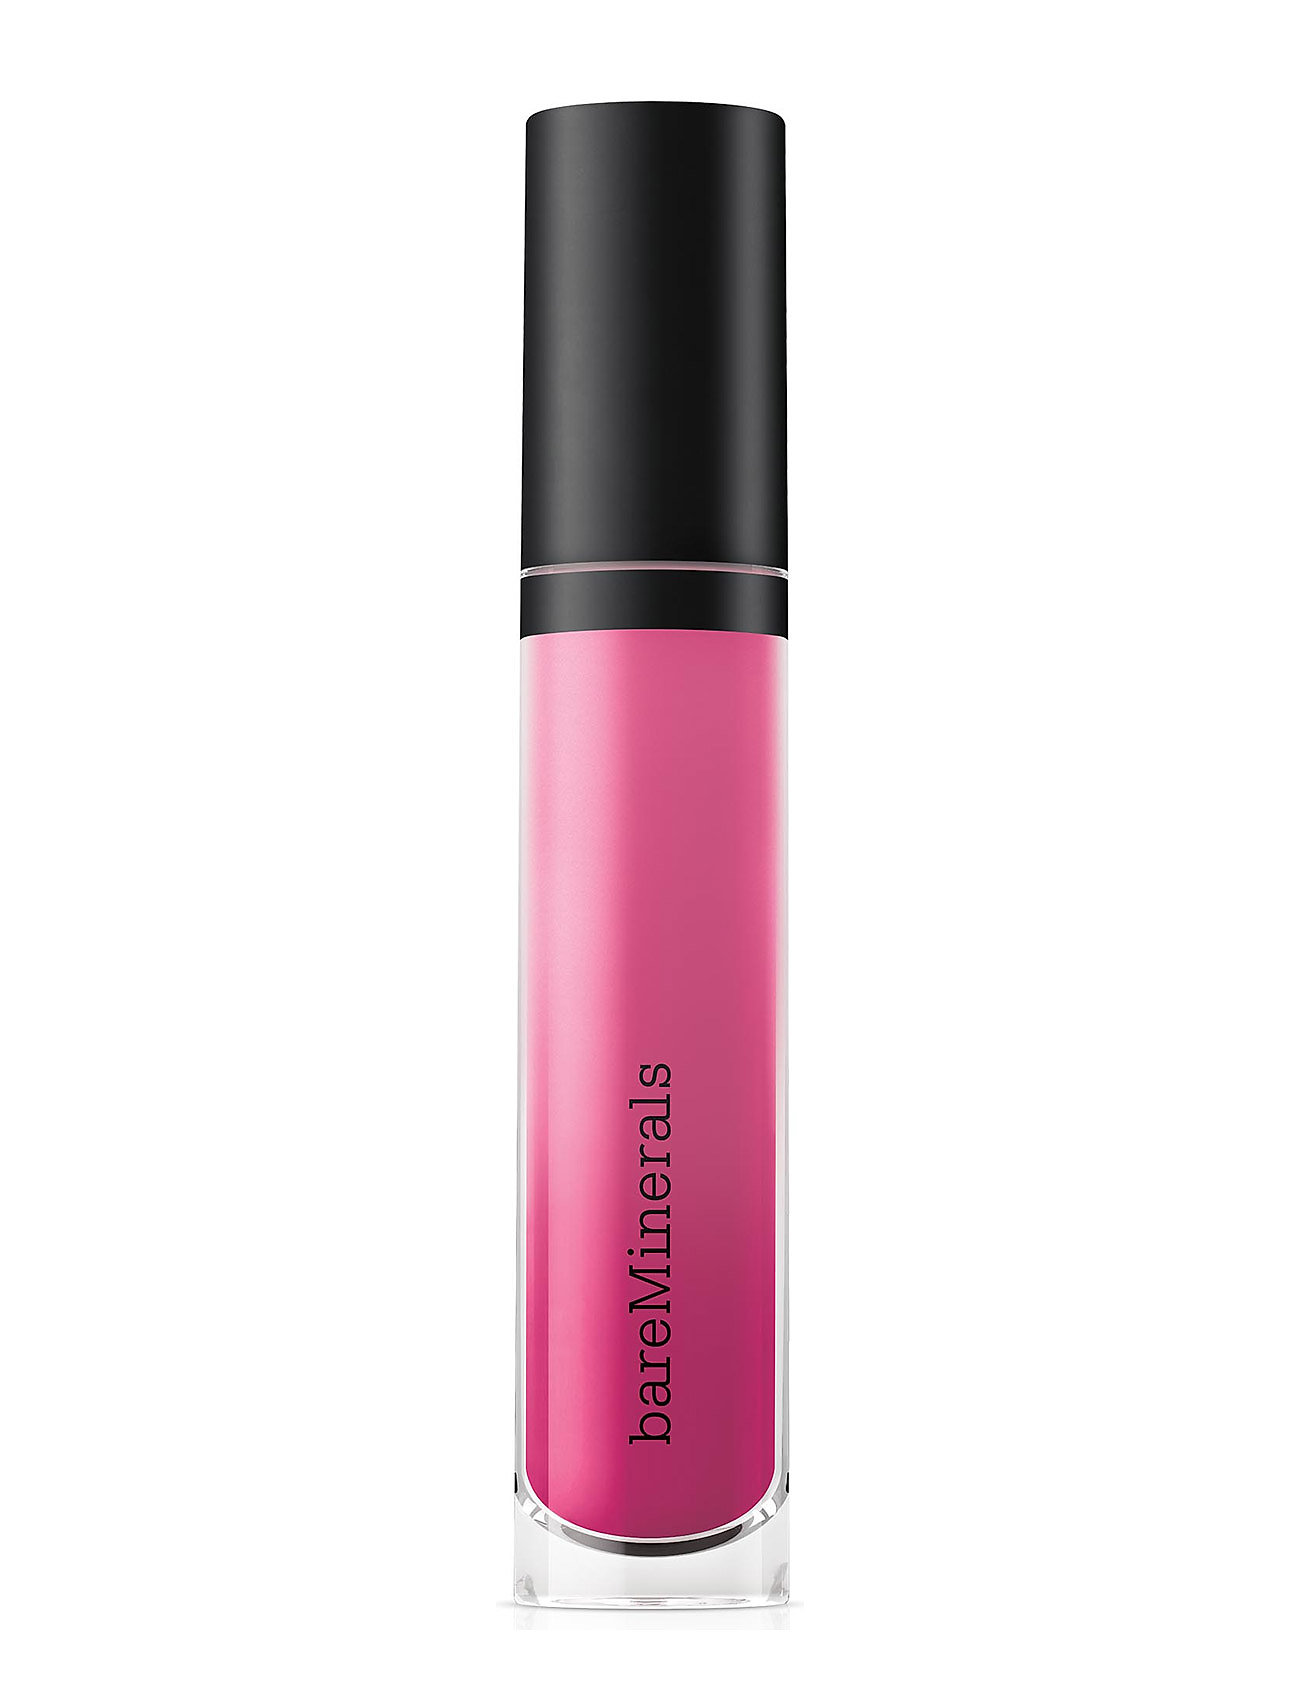 Image of Statement Matte Liquid Lipcolor Lipgloss Makeup Lyserød BareMinerals (3067522167)